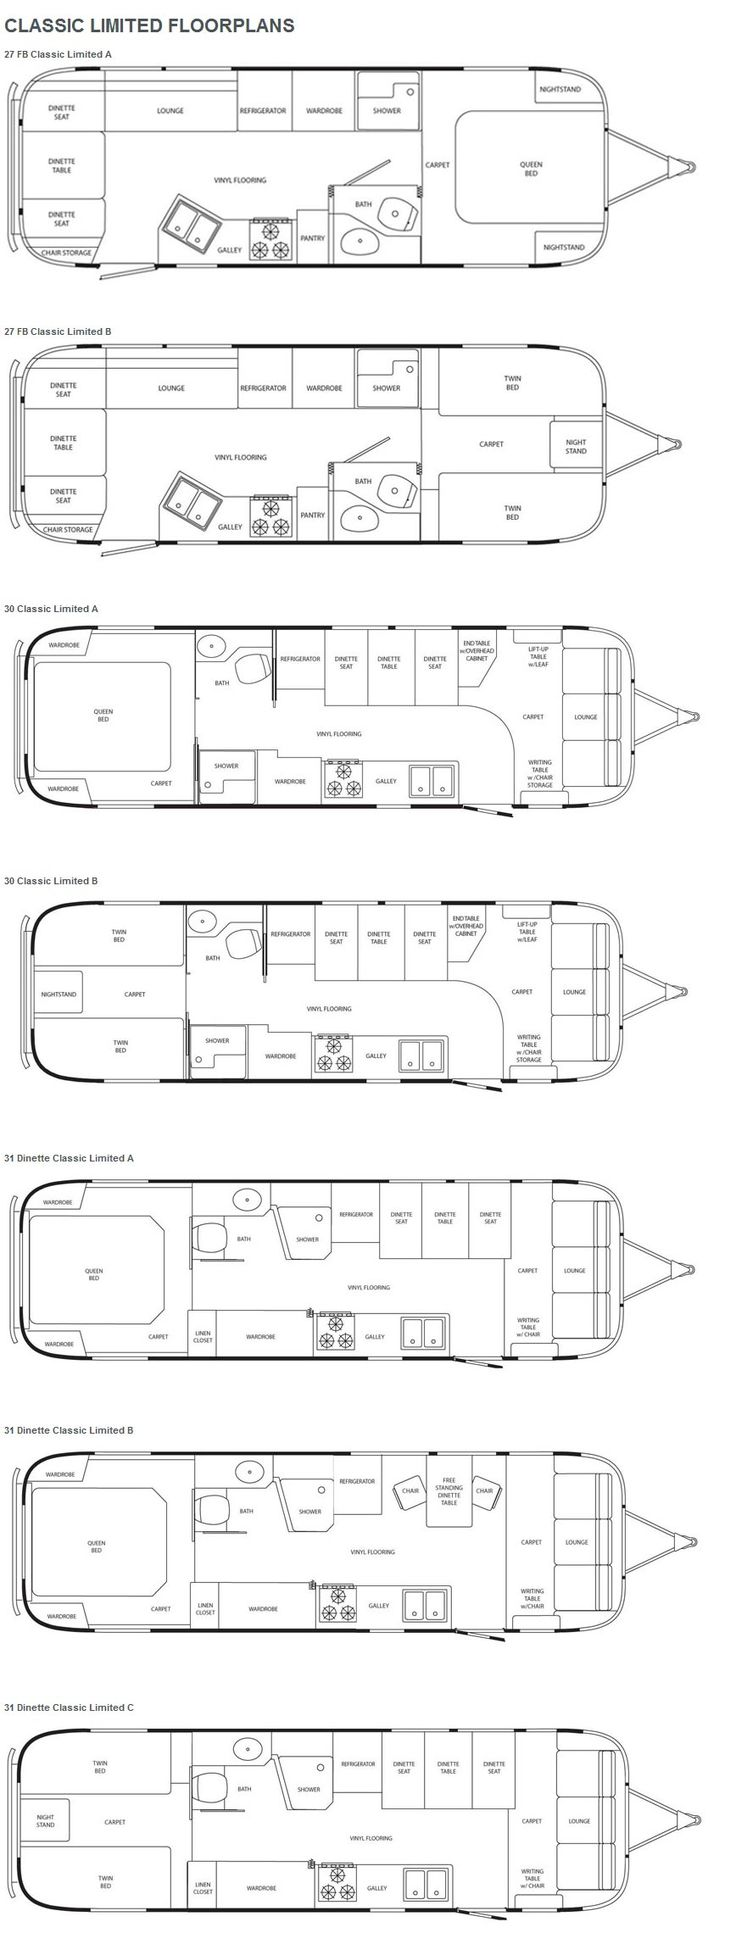 Airstream Classic Limited travel trailer floorplans